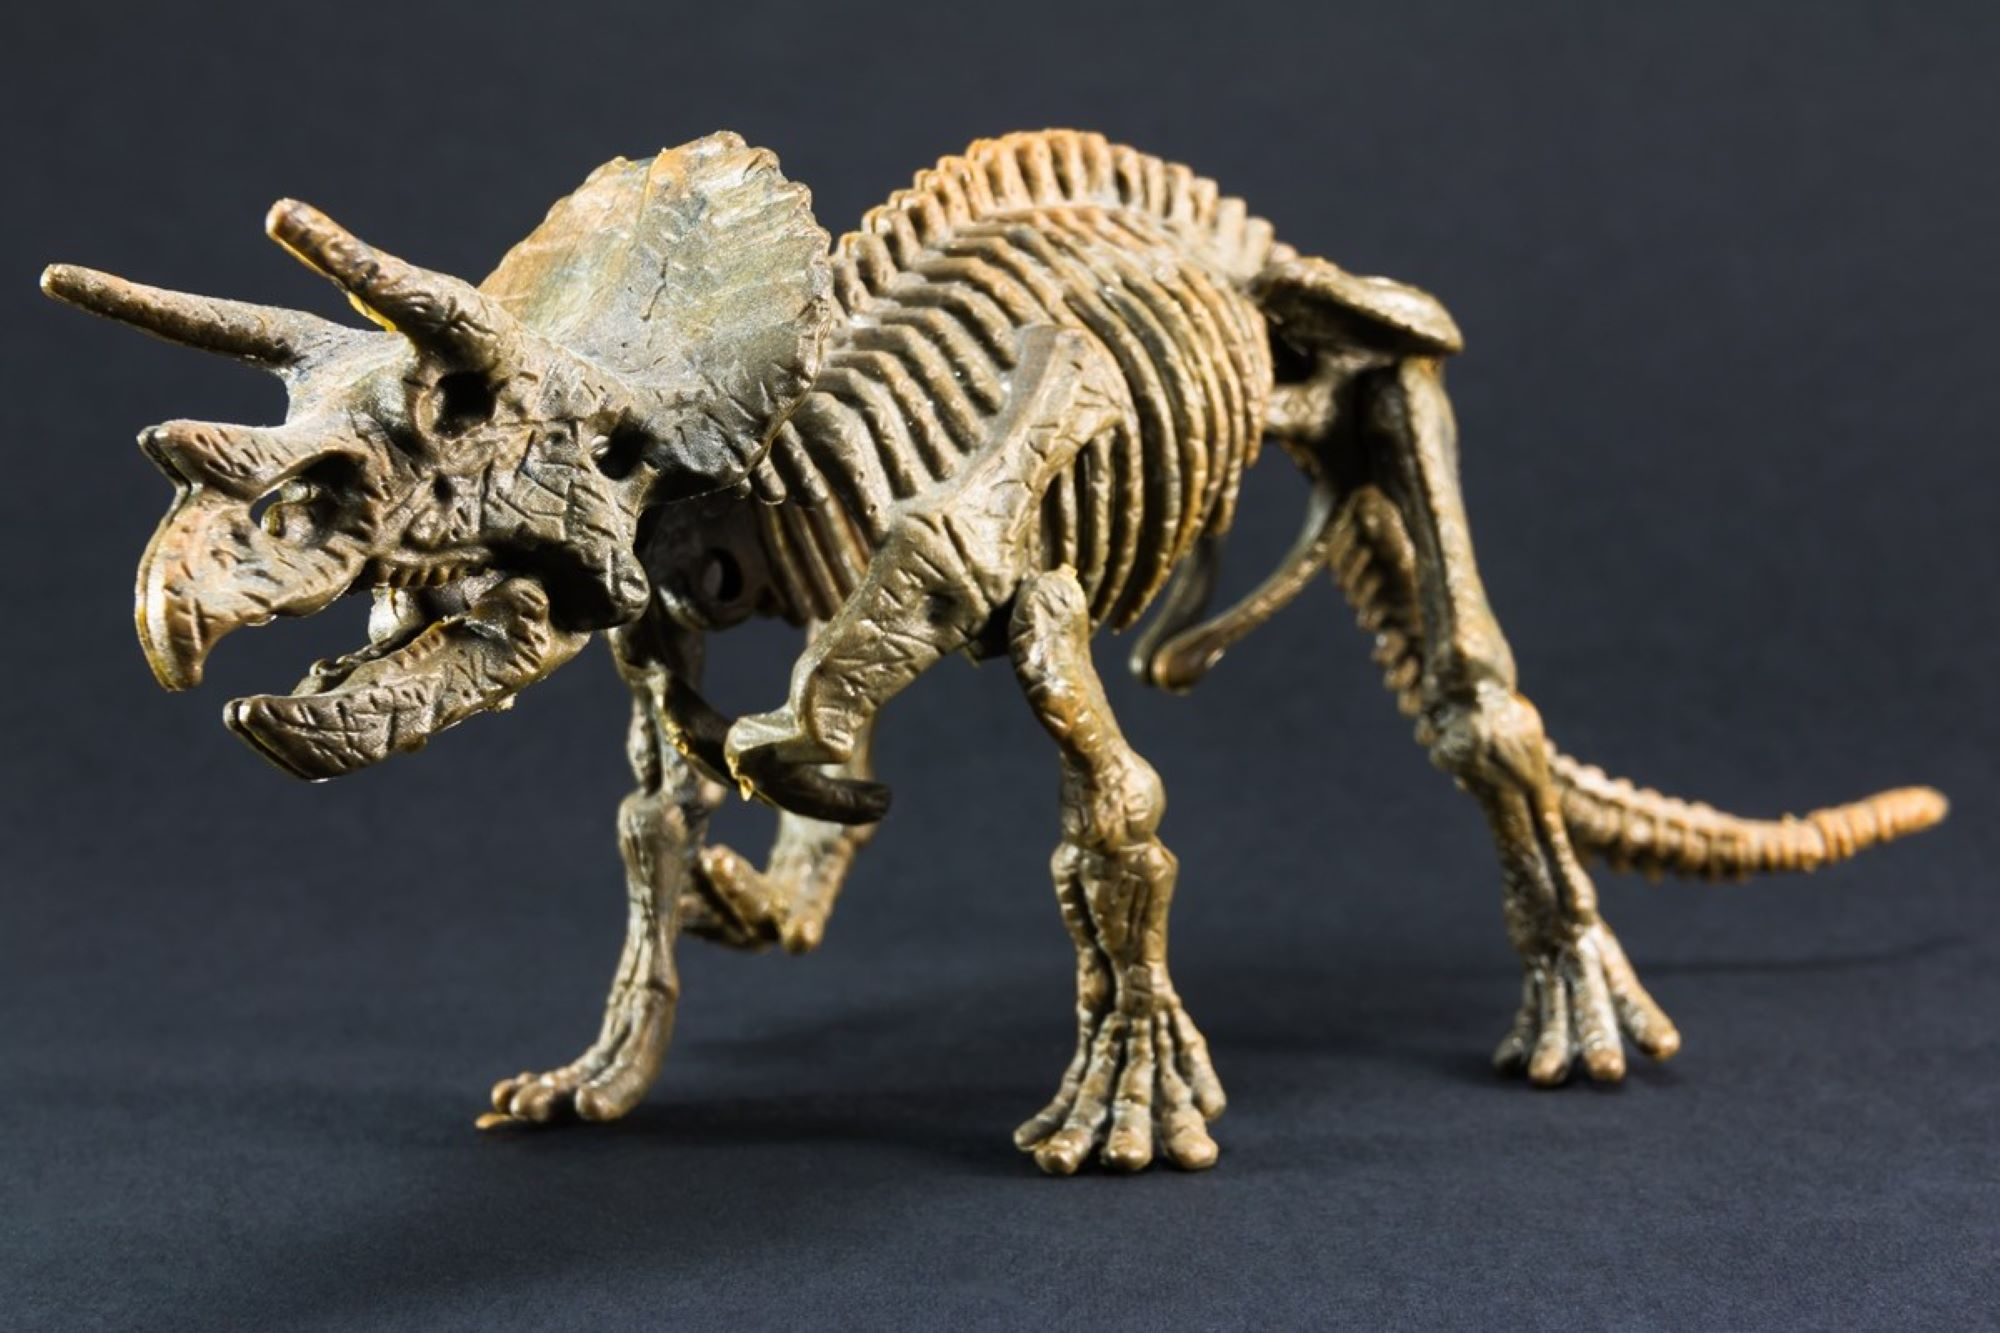 An anonym bought the skeleton of a Triceratops for € 6.65 million